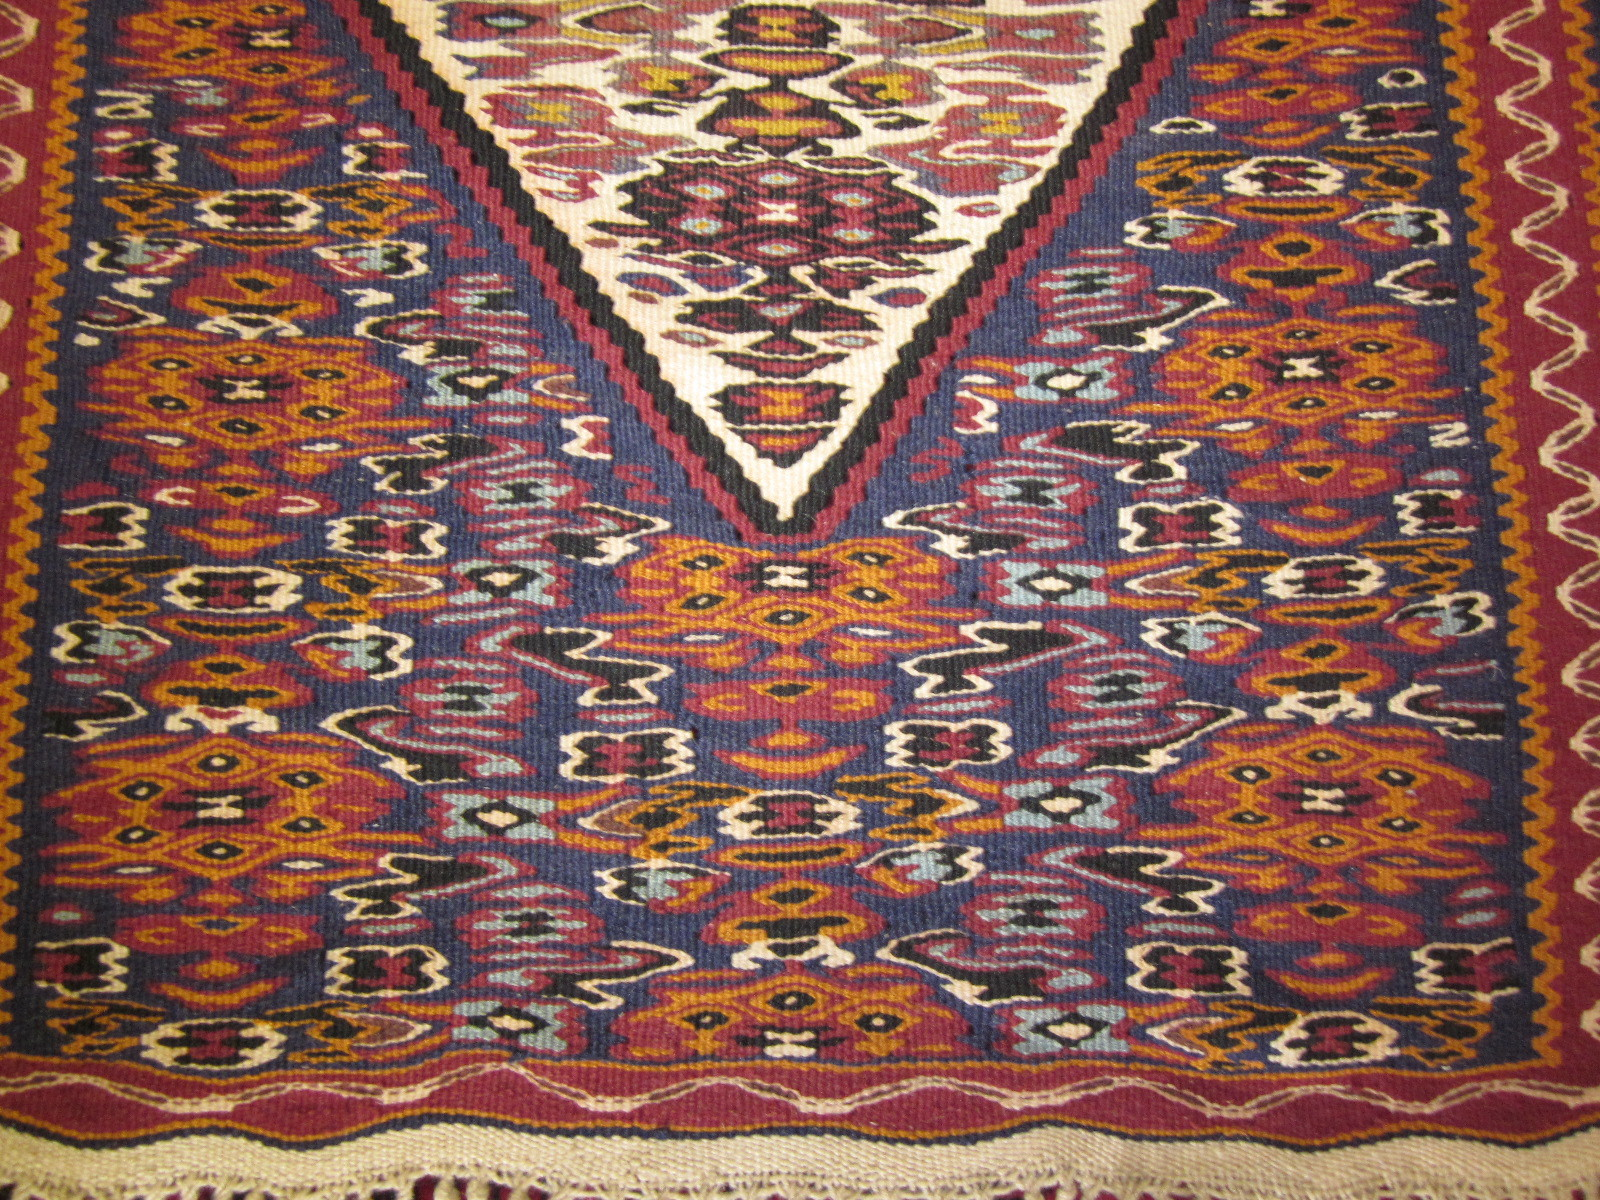 #38) Small Senna kilim runner, close-up.